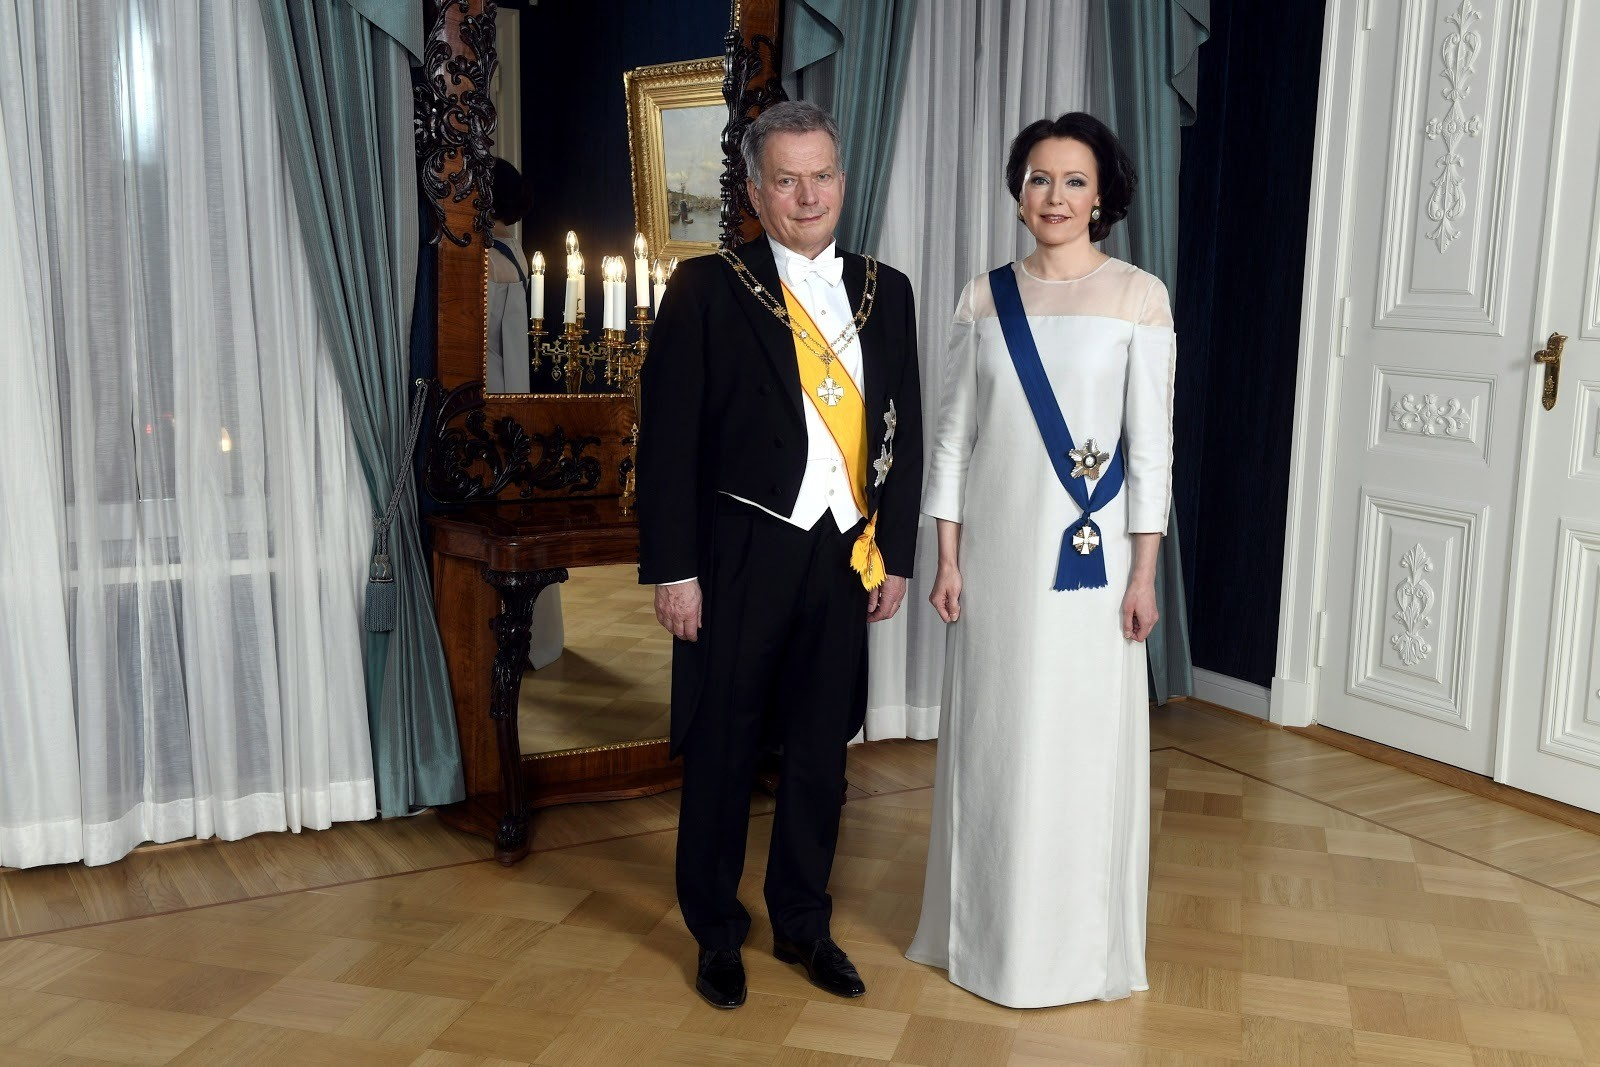 Finland's President Sauli Niinisto and his wife Jenni Haukio pose for a photograph ahead of the Independence Day reception in Helsinki, Finland December 6, 2018. Vesa Moilanen/Lehtikuva/via REUTERS ATTENTION EDITORS - THIS IMAGE WAS PROVIDED BY A THIRD PARTY. NO THIRD PARTY SALES. NOT FOR USE BY REUTERS THIRD PARTY DISTRIBUTORS. FINLAND OUT. NO COMMERCIAL OR EDITORIAL SALES IN FINLAND. - RC1C283F07E0